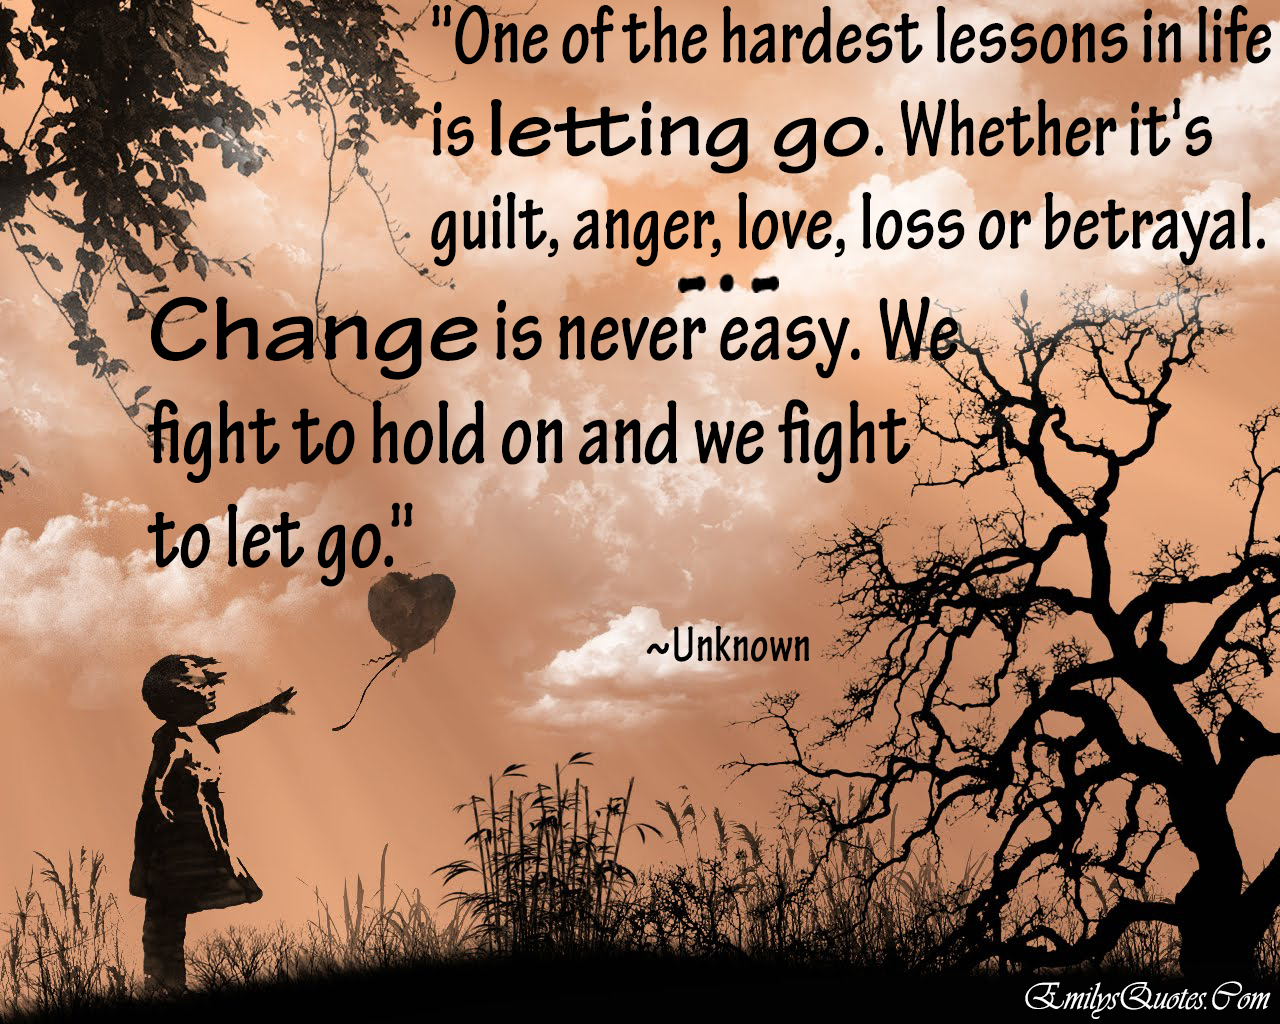 Quotes About Life And Love And Lessons One Of The Hardest Lessons In Life Is Letting Gowhether It's